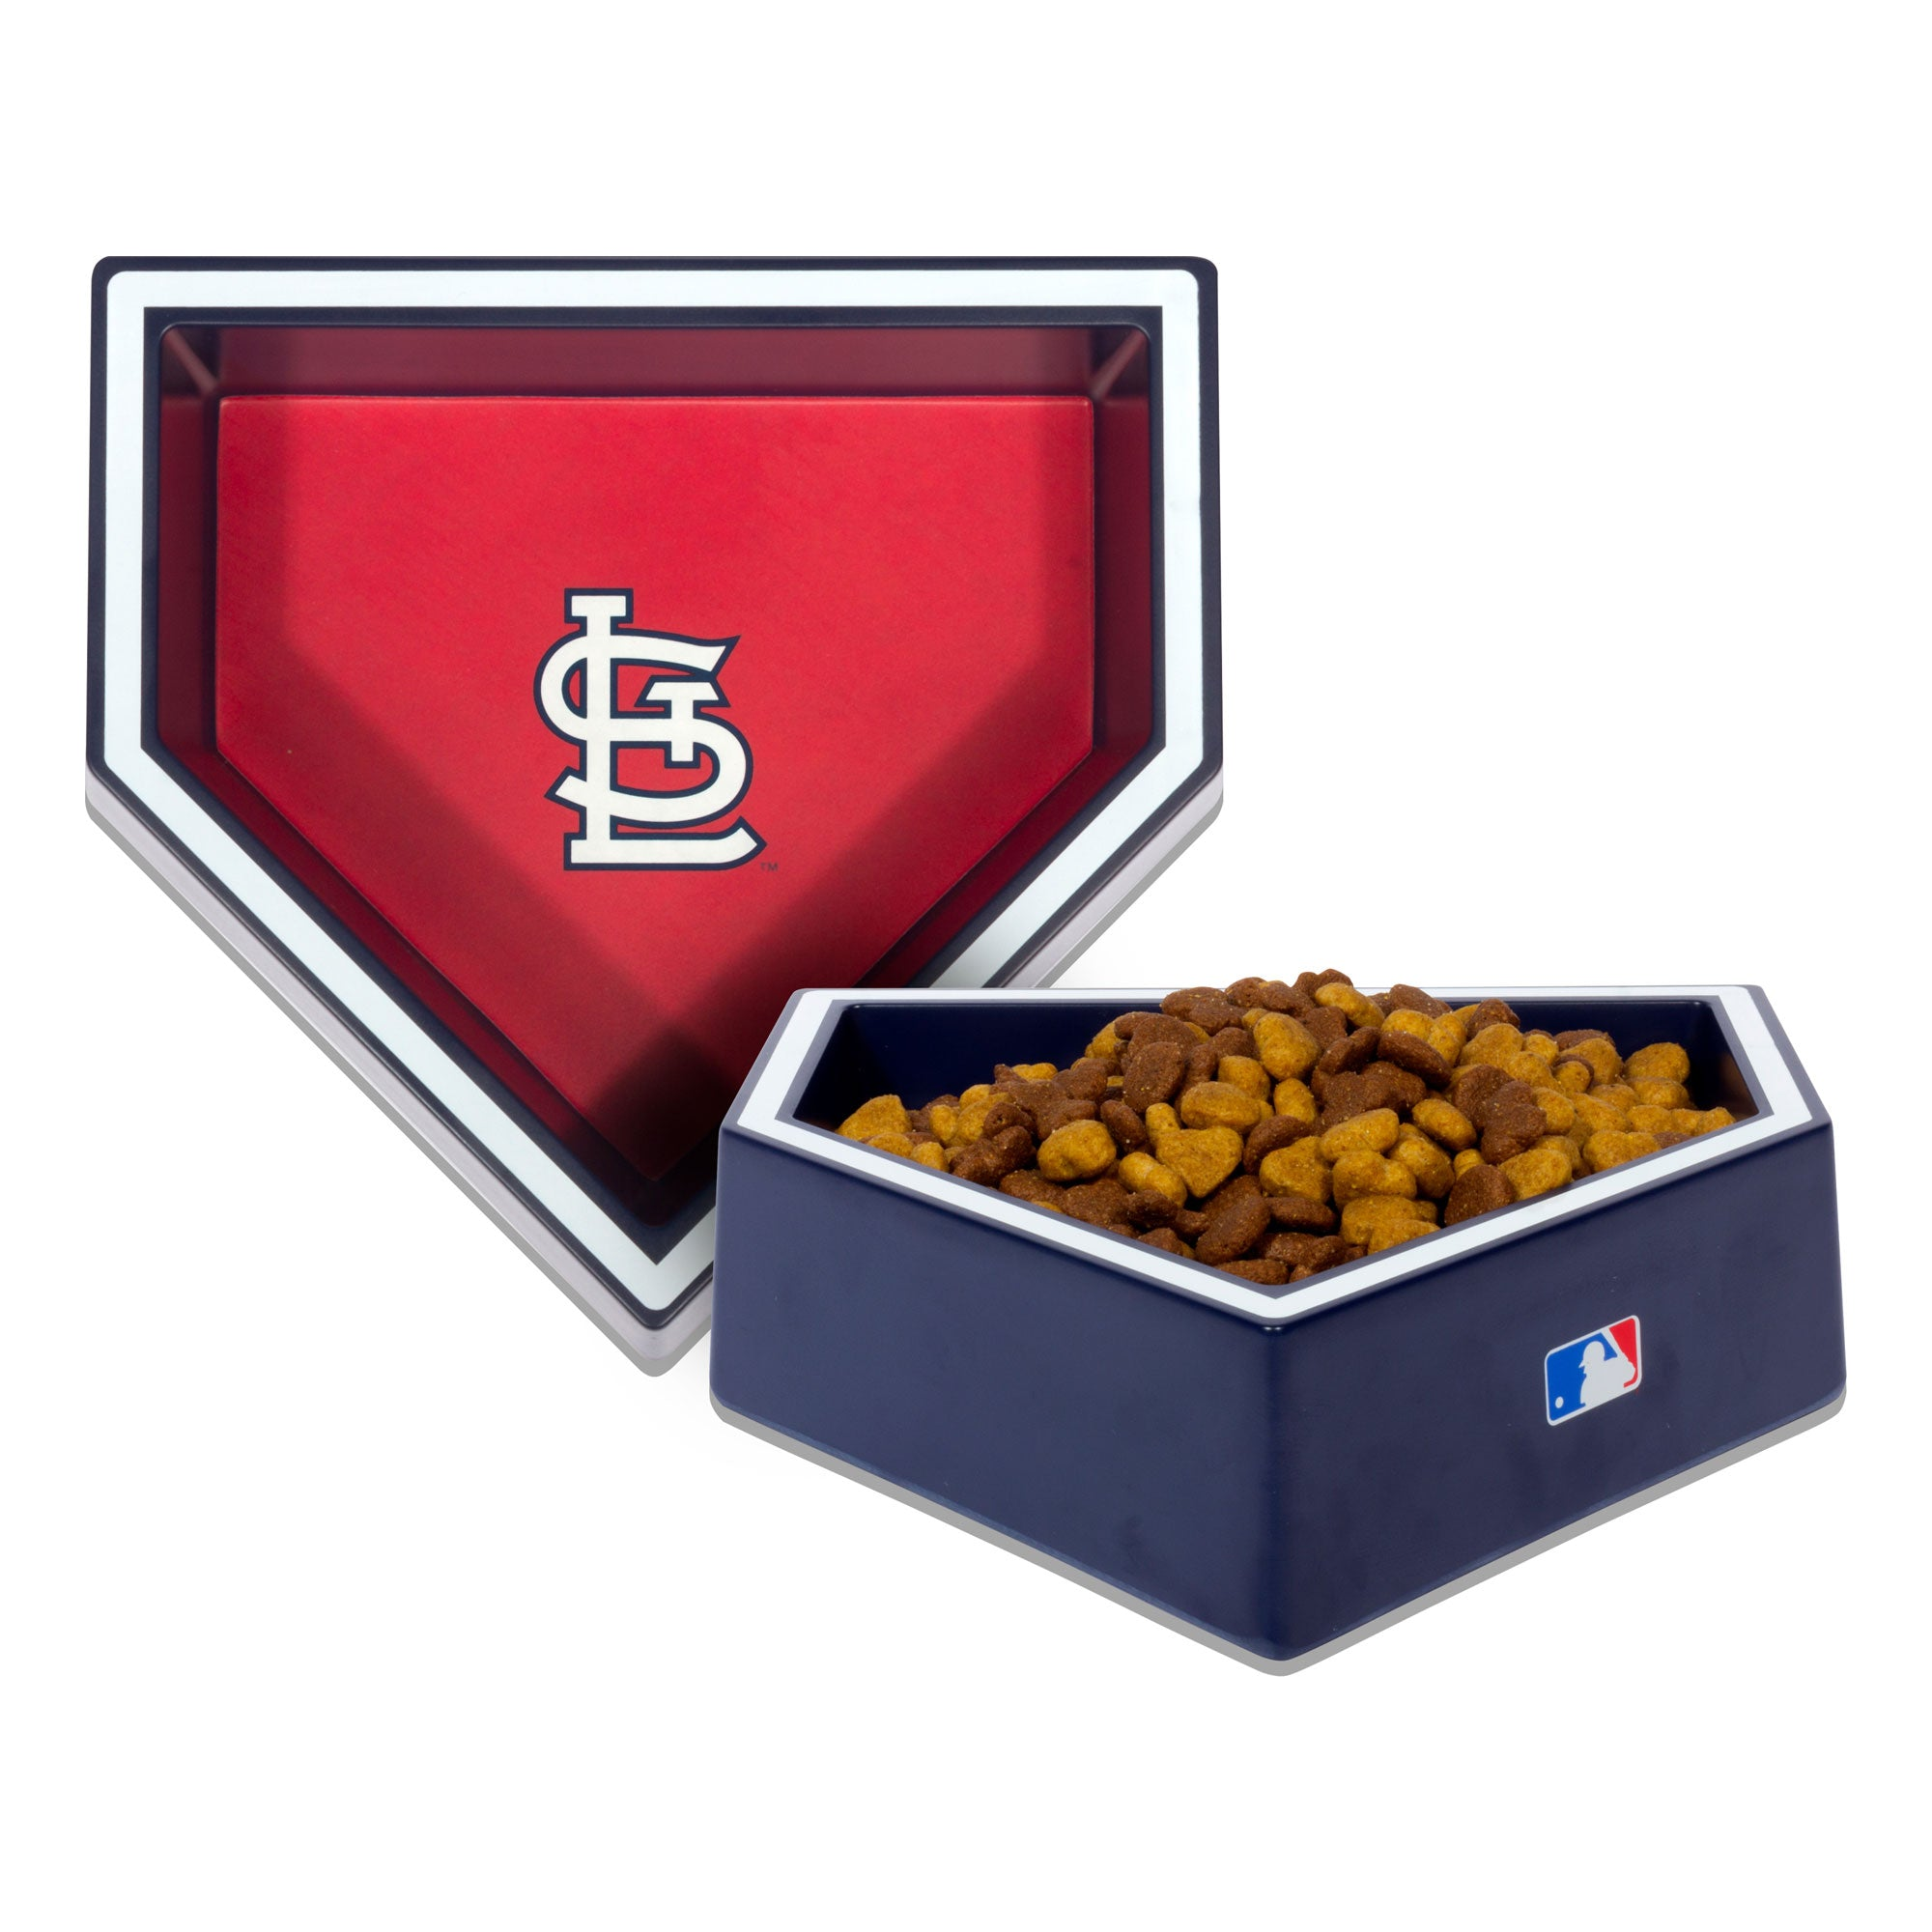 St. Louis Cardinals Home Plate Bowl